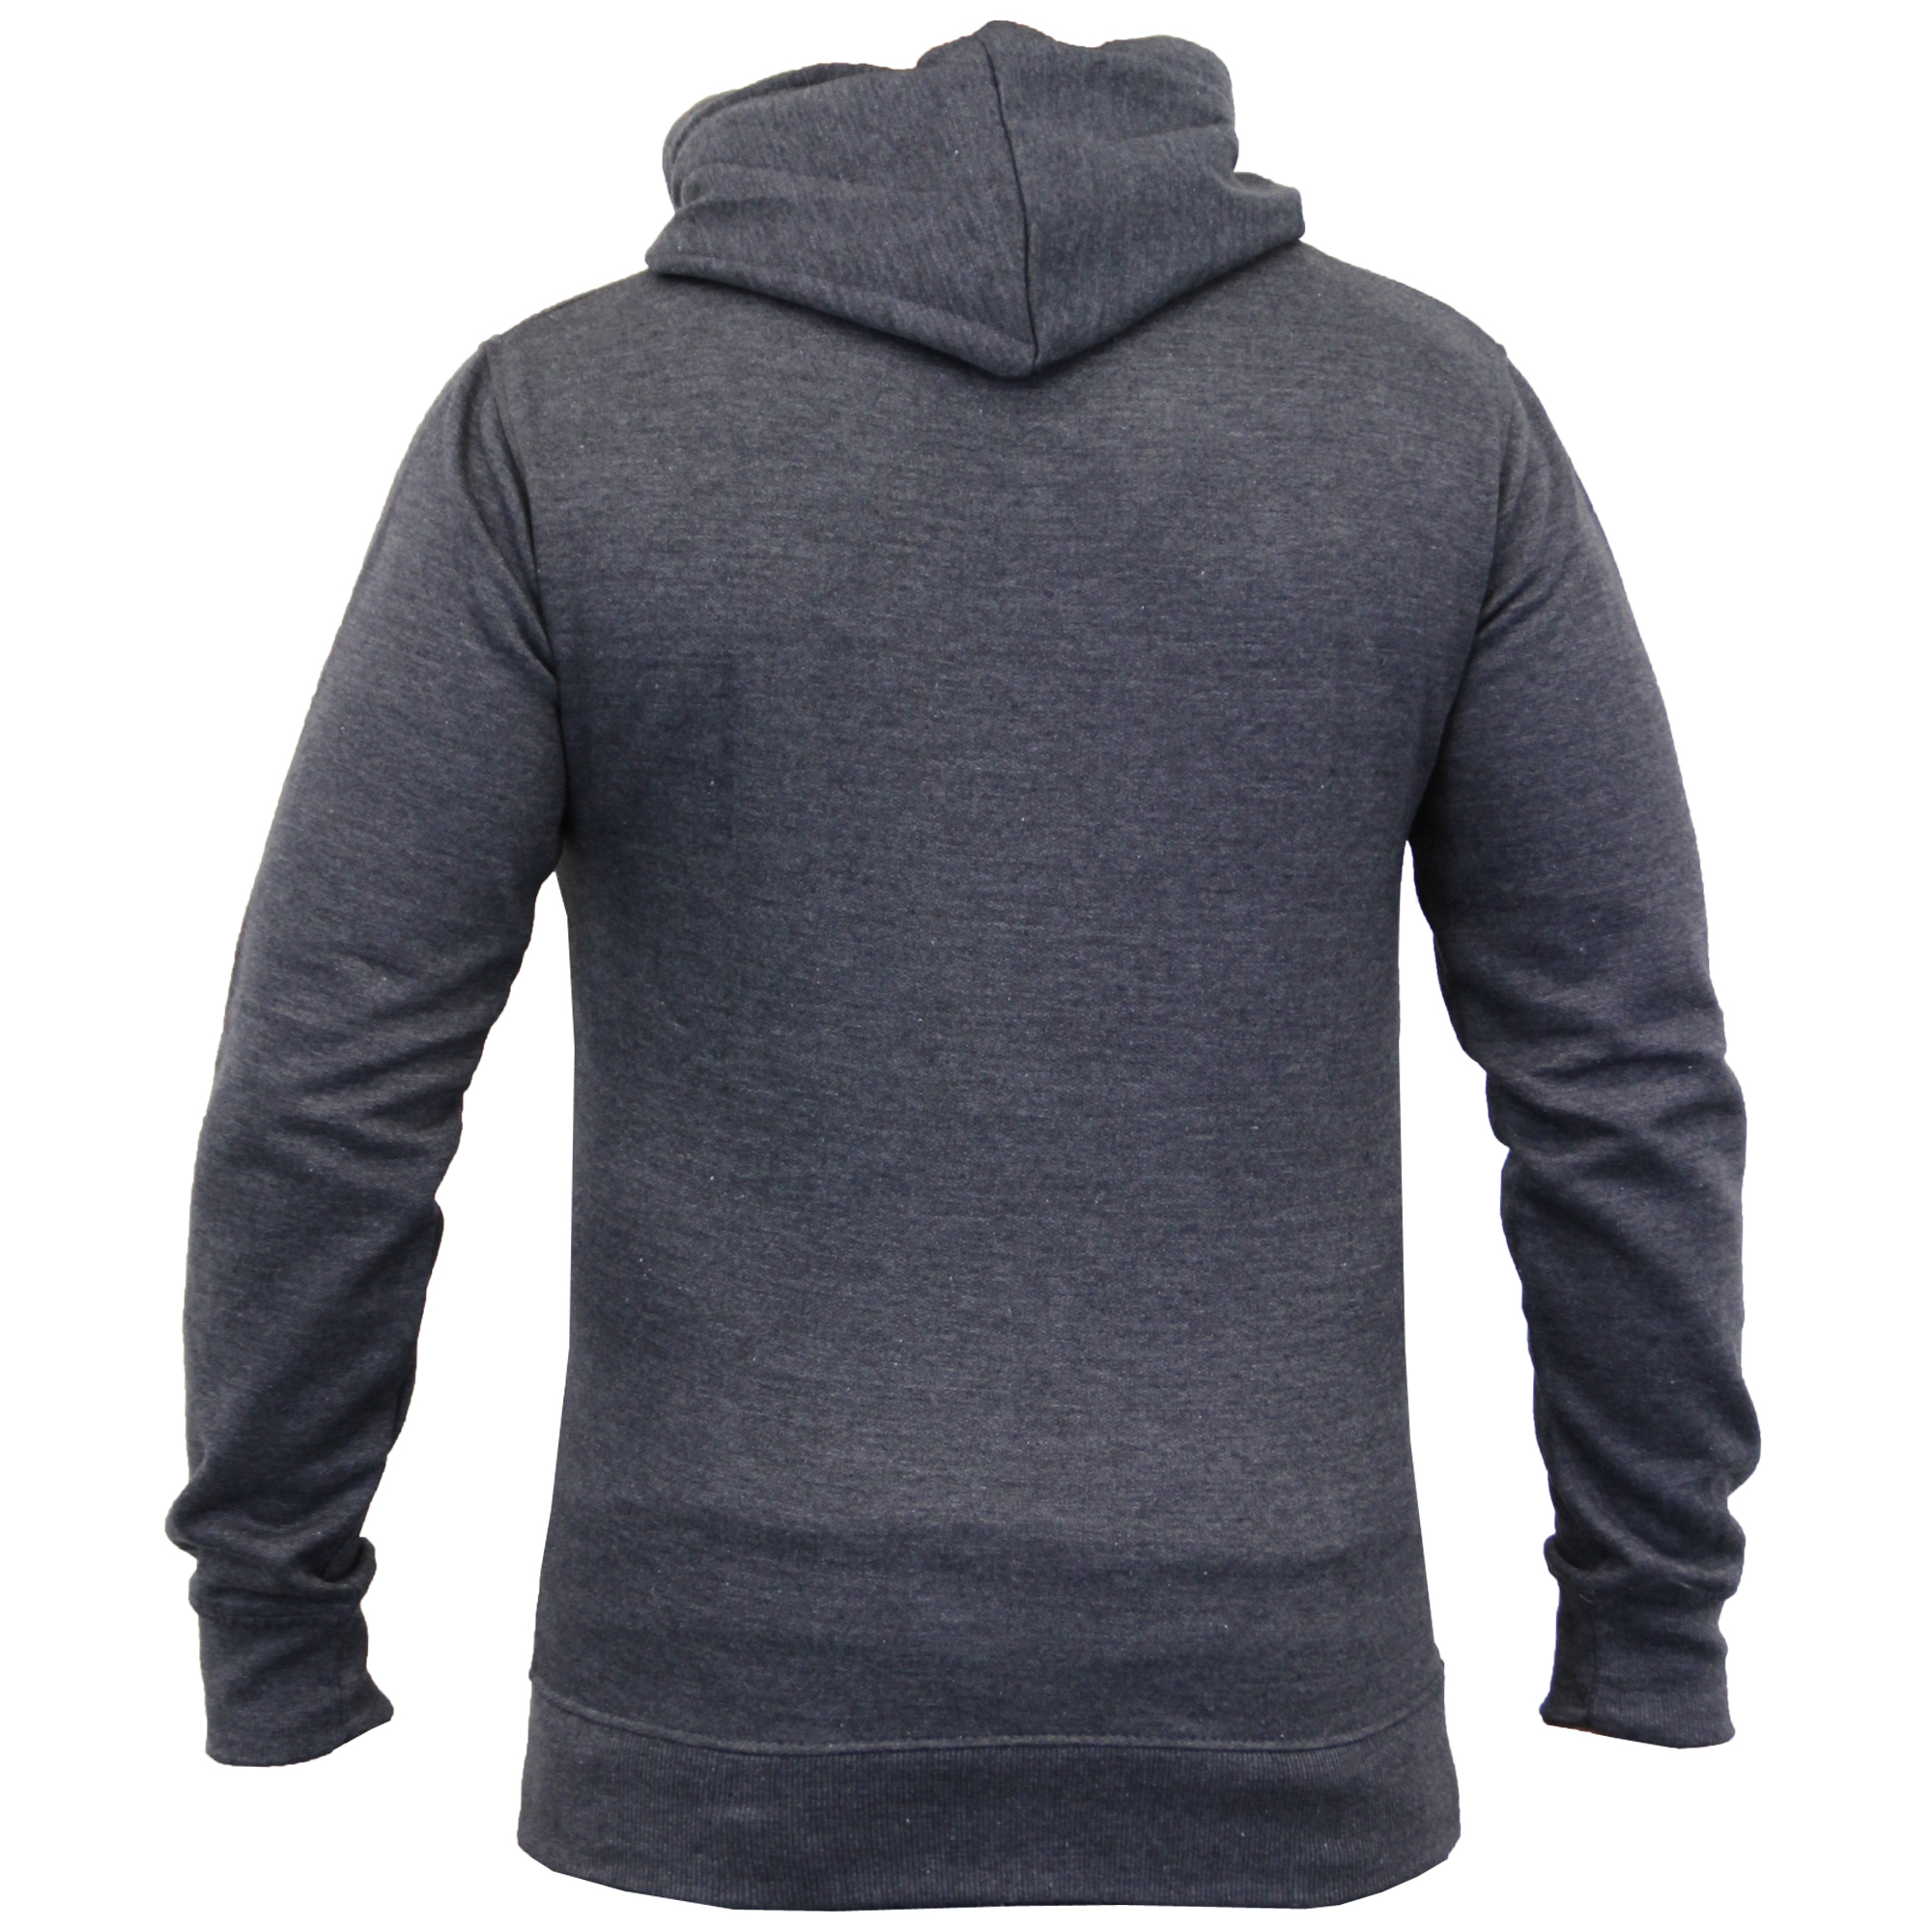 Mens-Diamond-Quilted-Hooded-Top-Fleece-Lined-Sweatshirt-By-Galvanize thumbnail 15